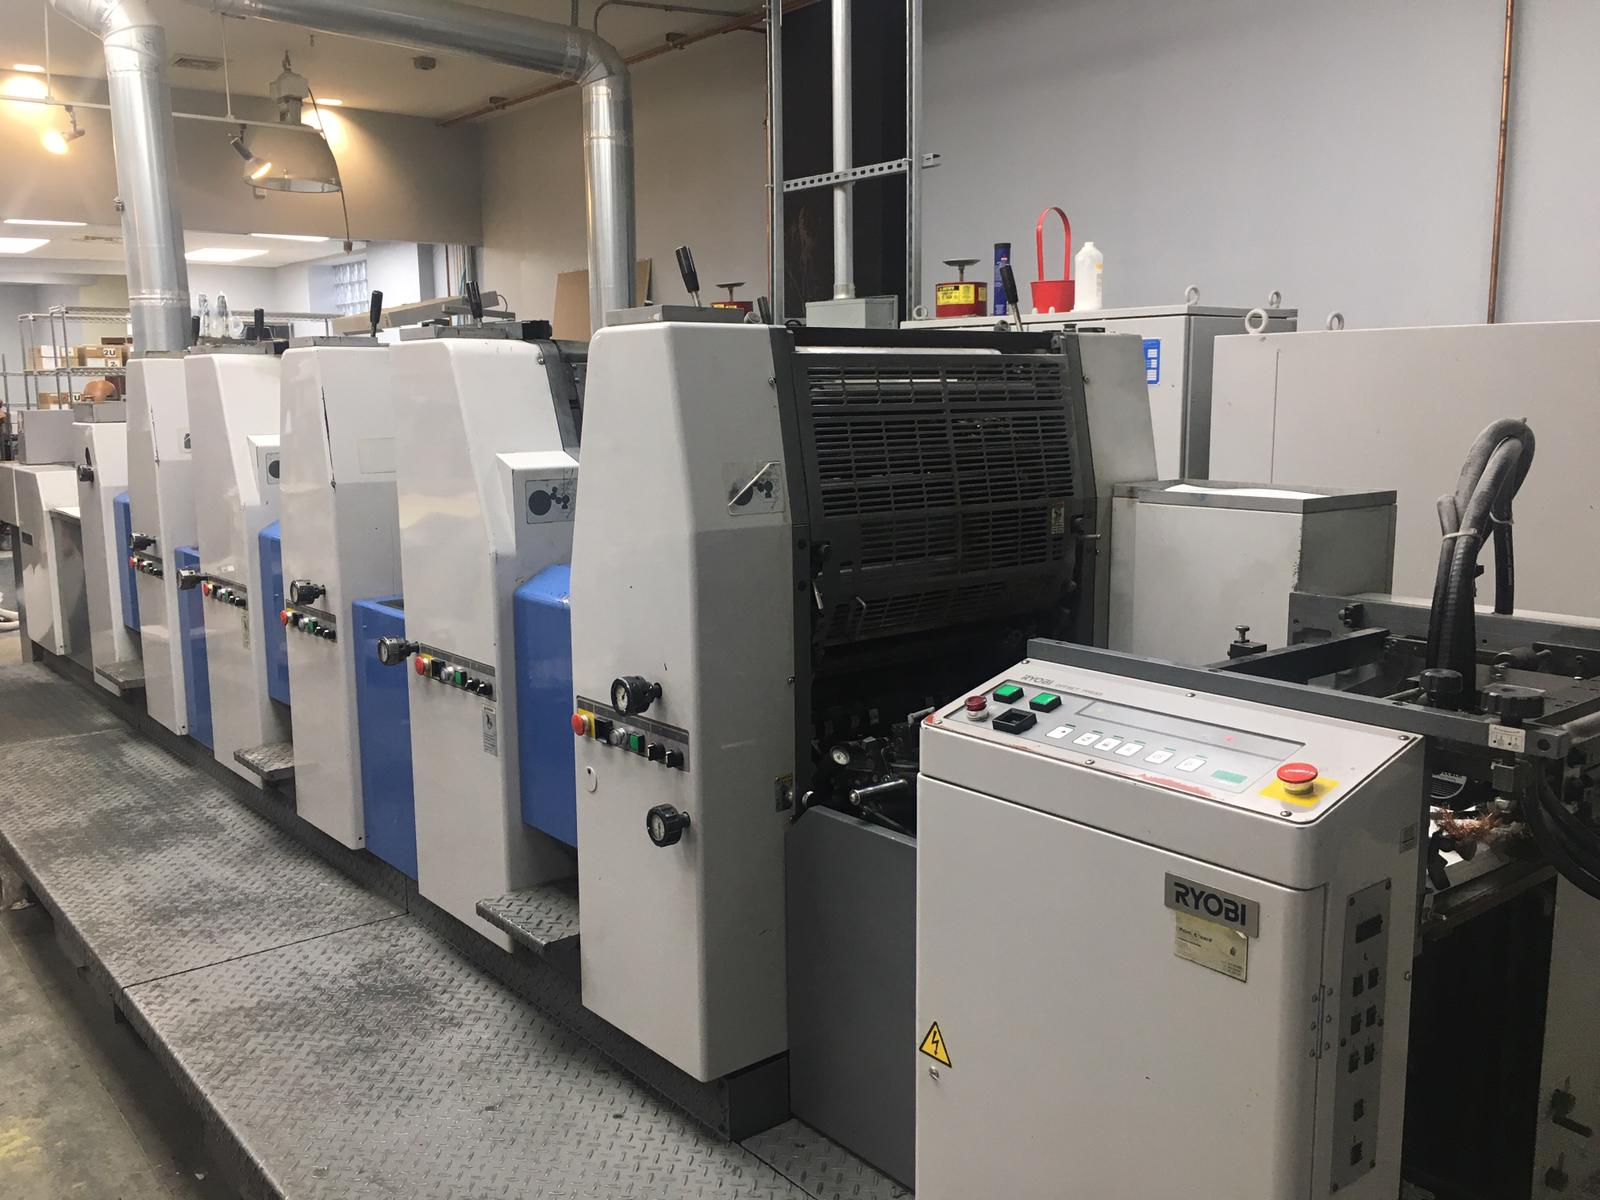 RYOBI 525HX-D WITH IN LINE COATER, SN # 1025, YEAR 1999 10